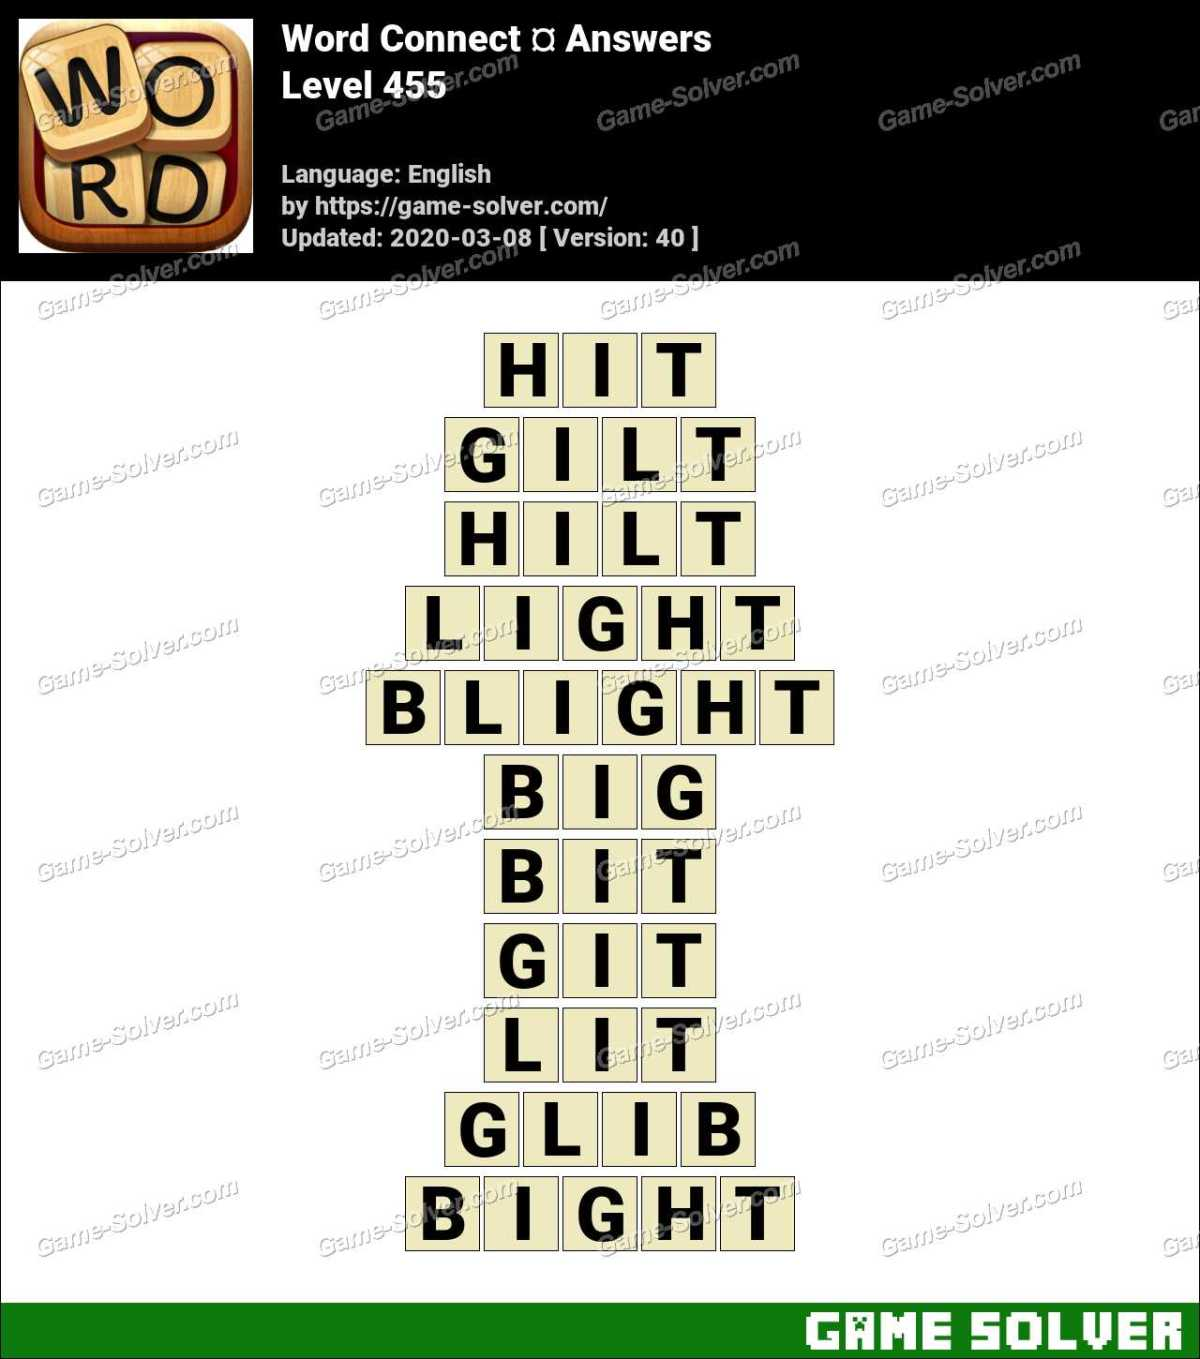 Word Connect Level 455 Answers